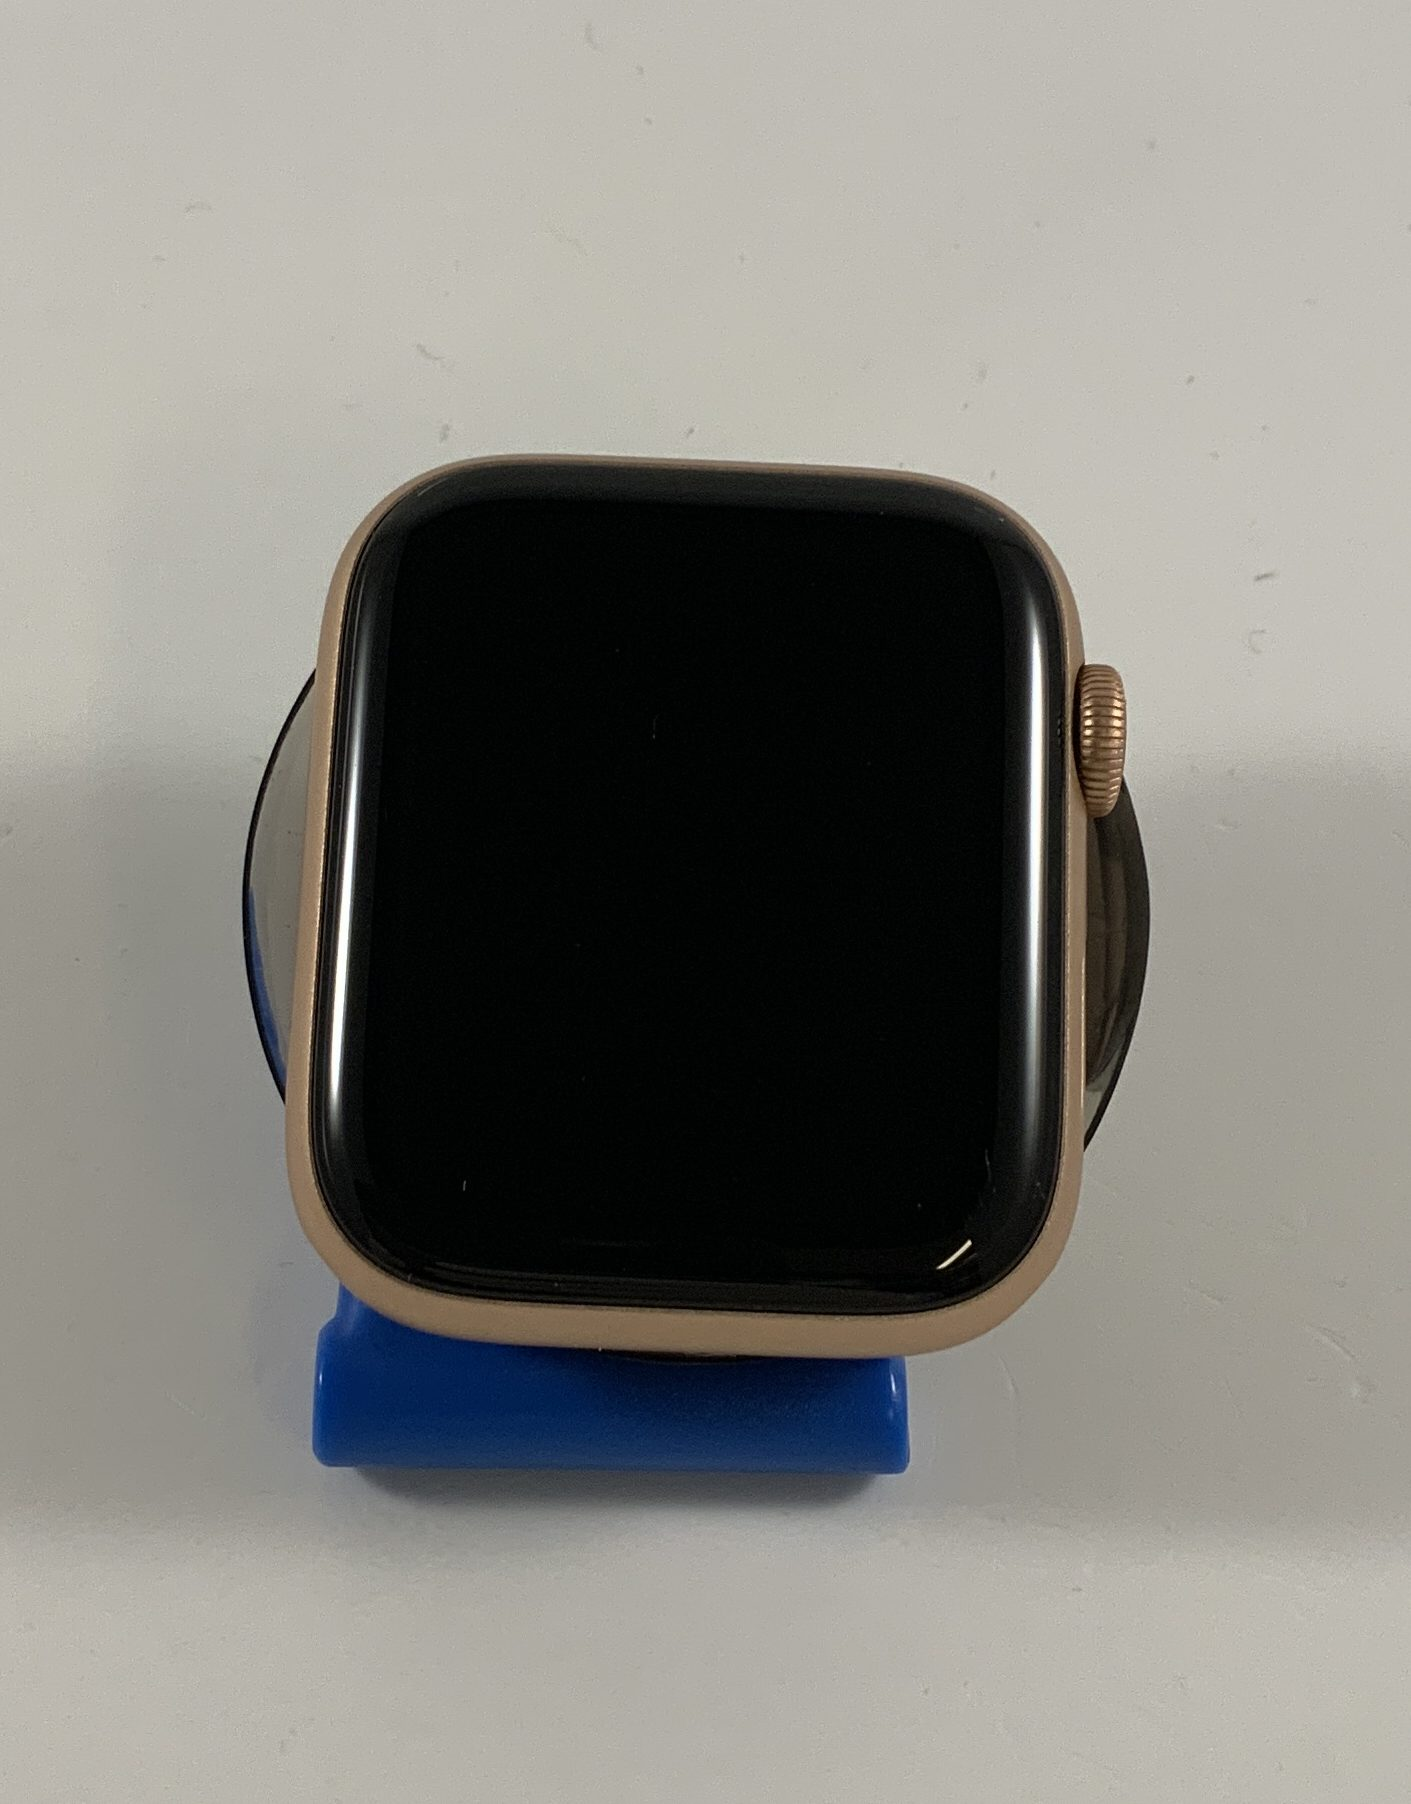 Watch Series 5 Aluminum Cellular (44mm), Gold, imagen 1